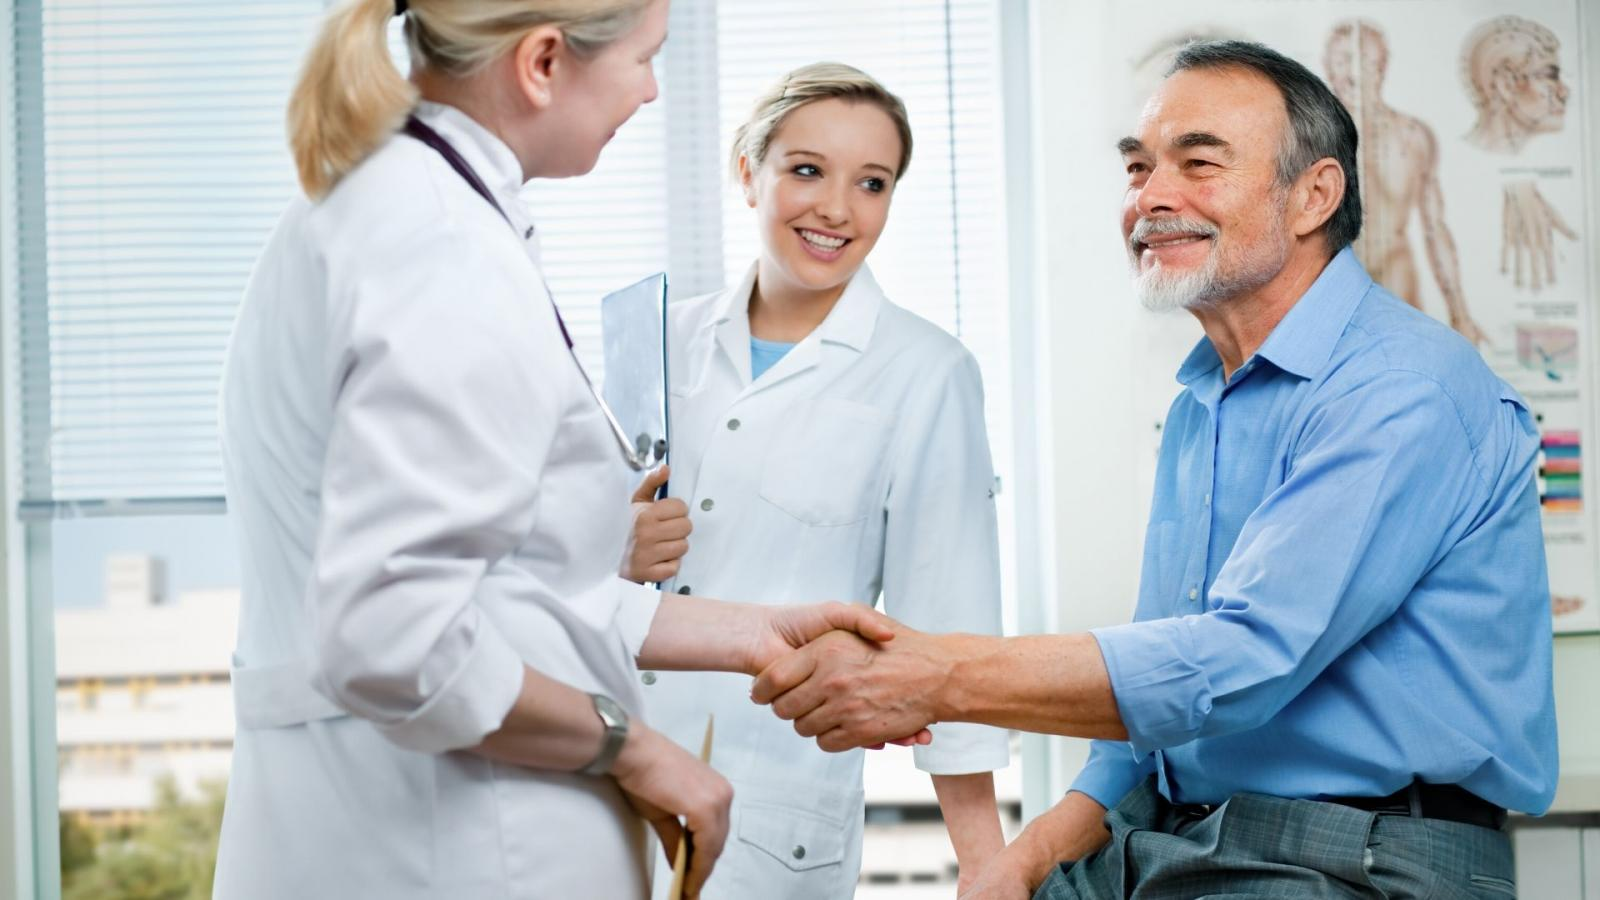 Doctor and nurse greeting patient